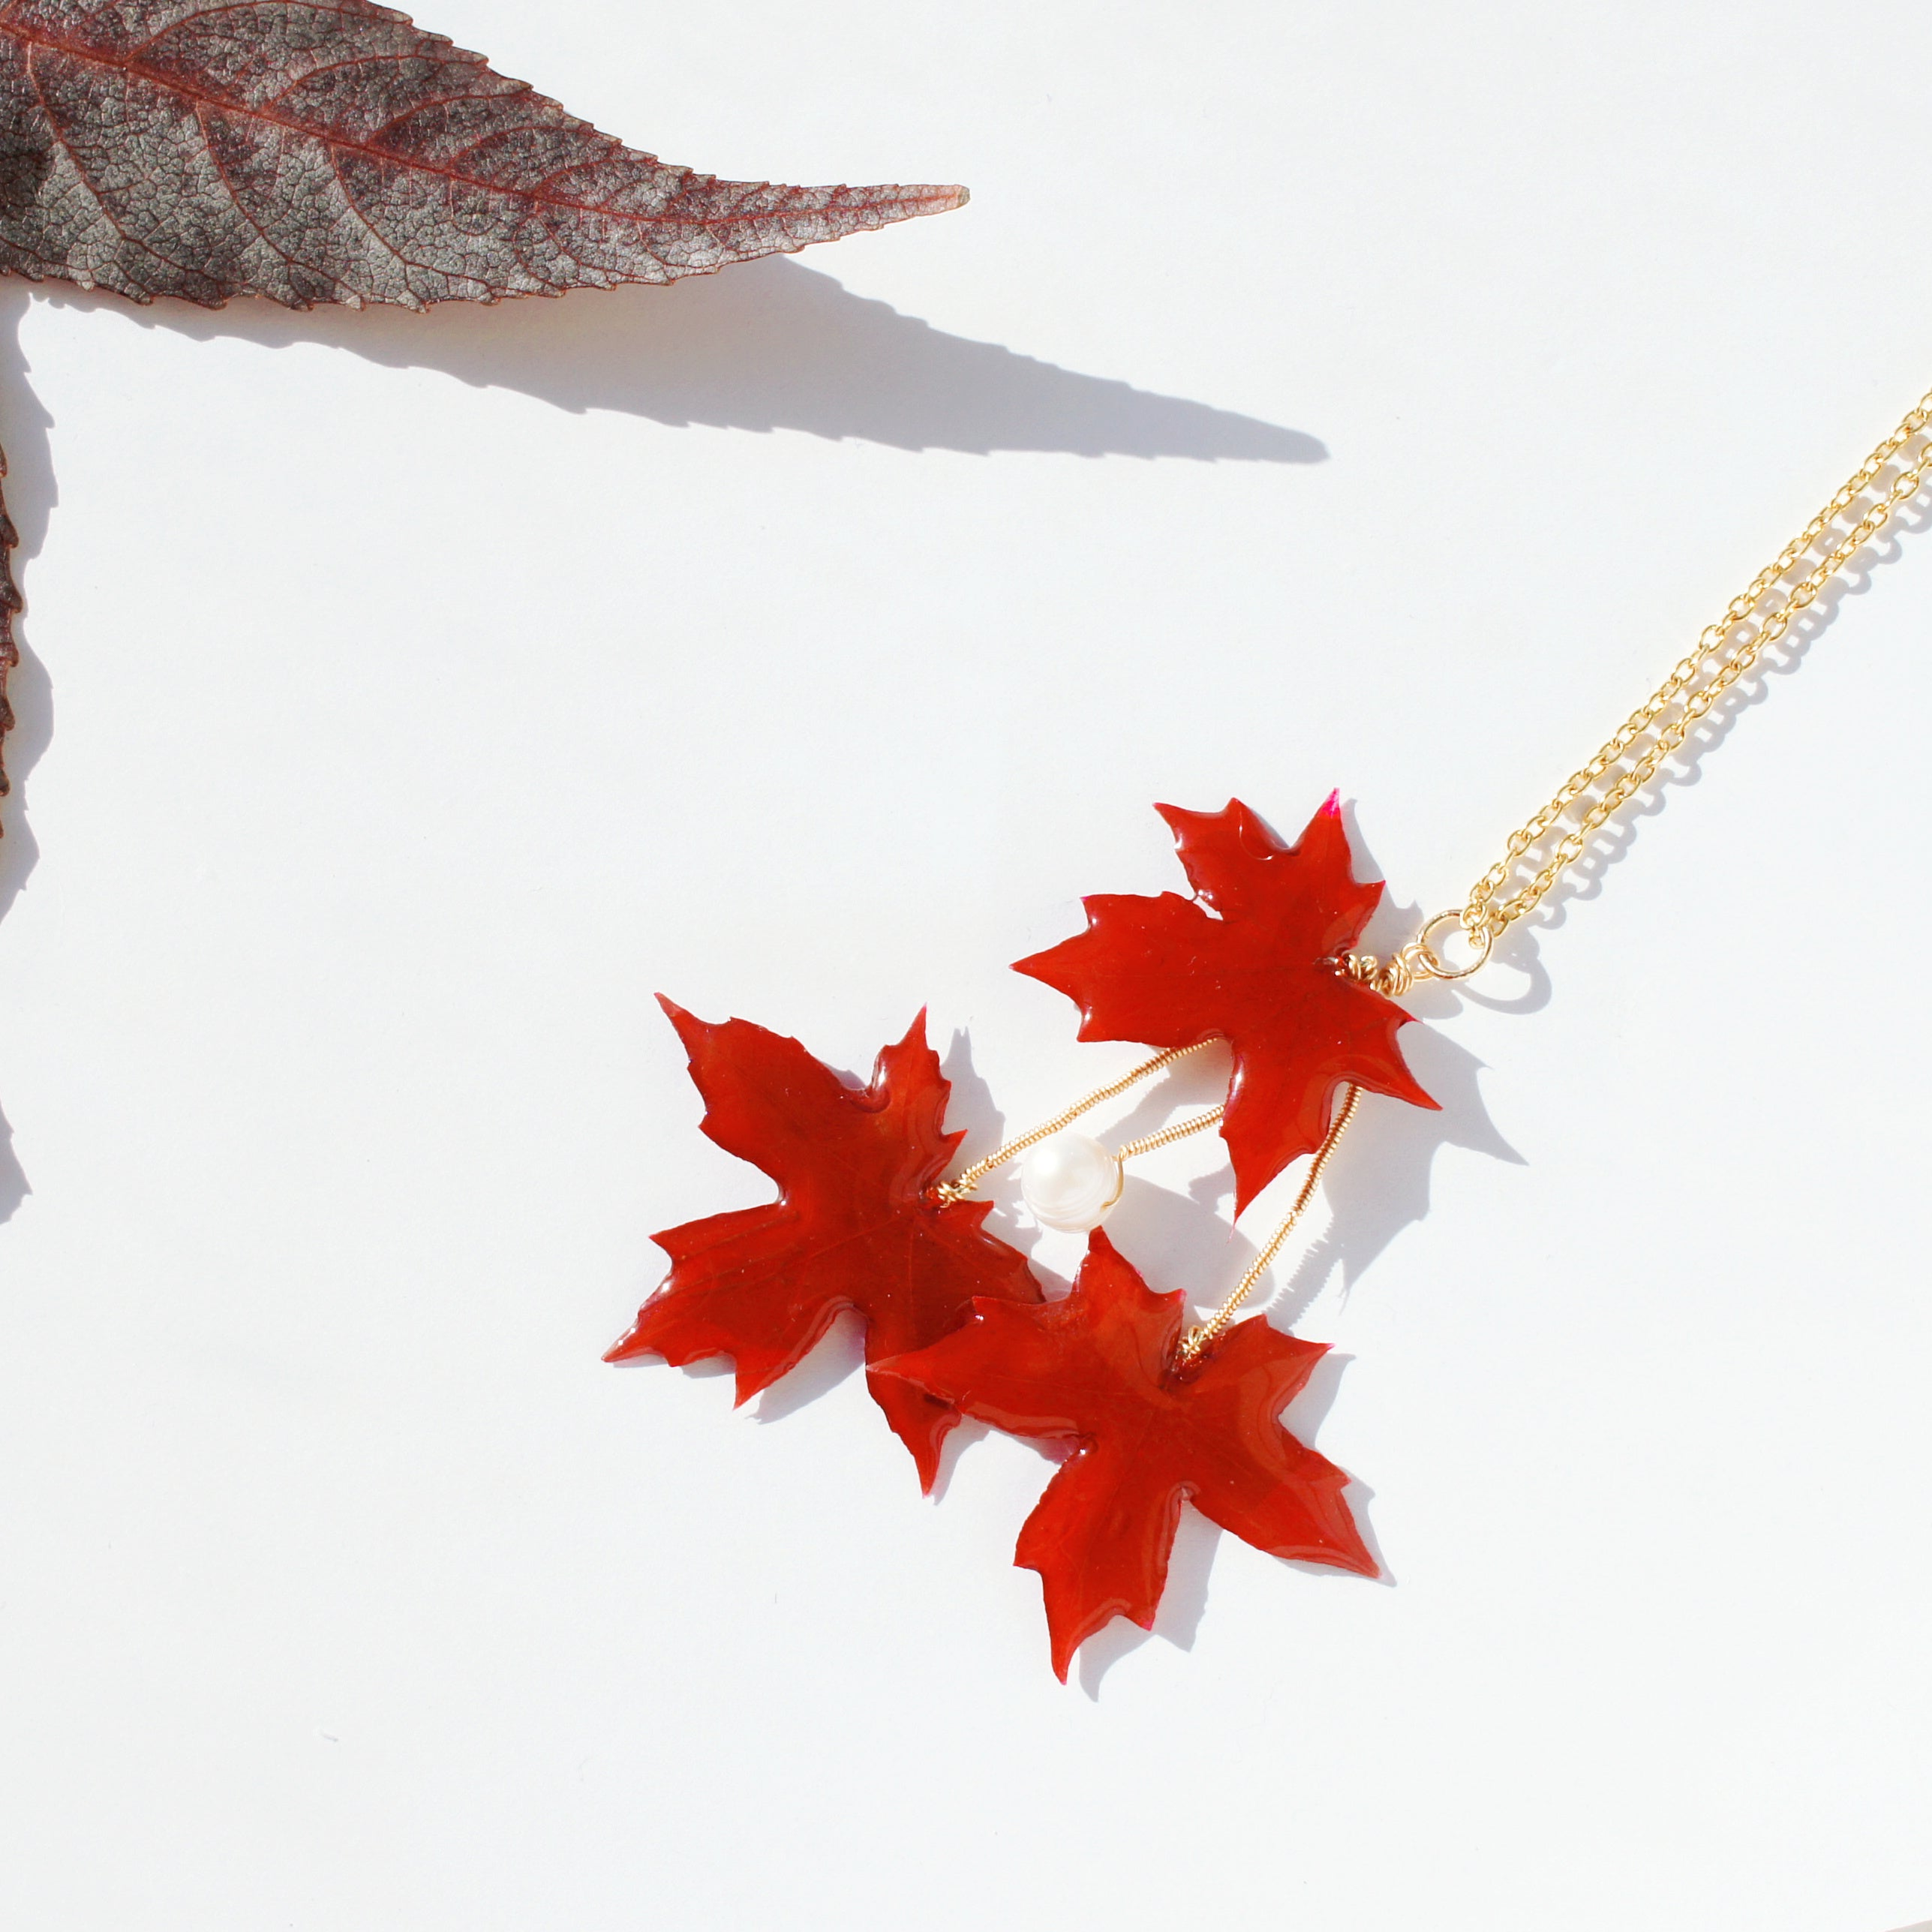 *REAL LEAVES* Be-leaf Red Maple Leaves and Freshwater Pearl Necklace